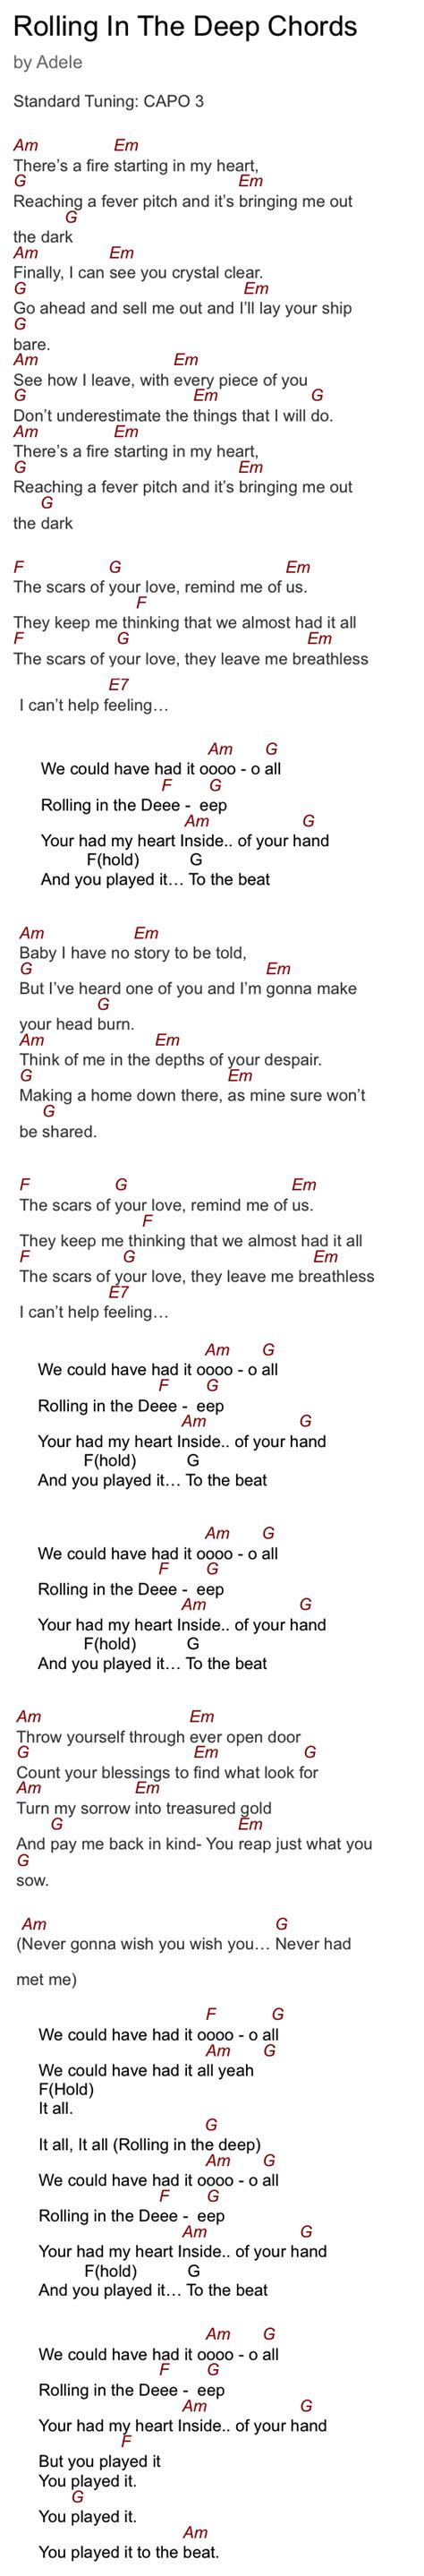 adele chords set adele s rolling in the deep guitar chords capo 3 guitar